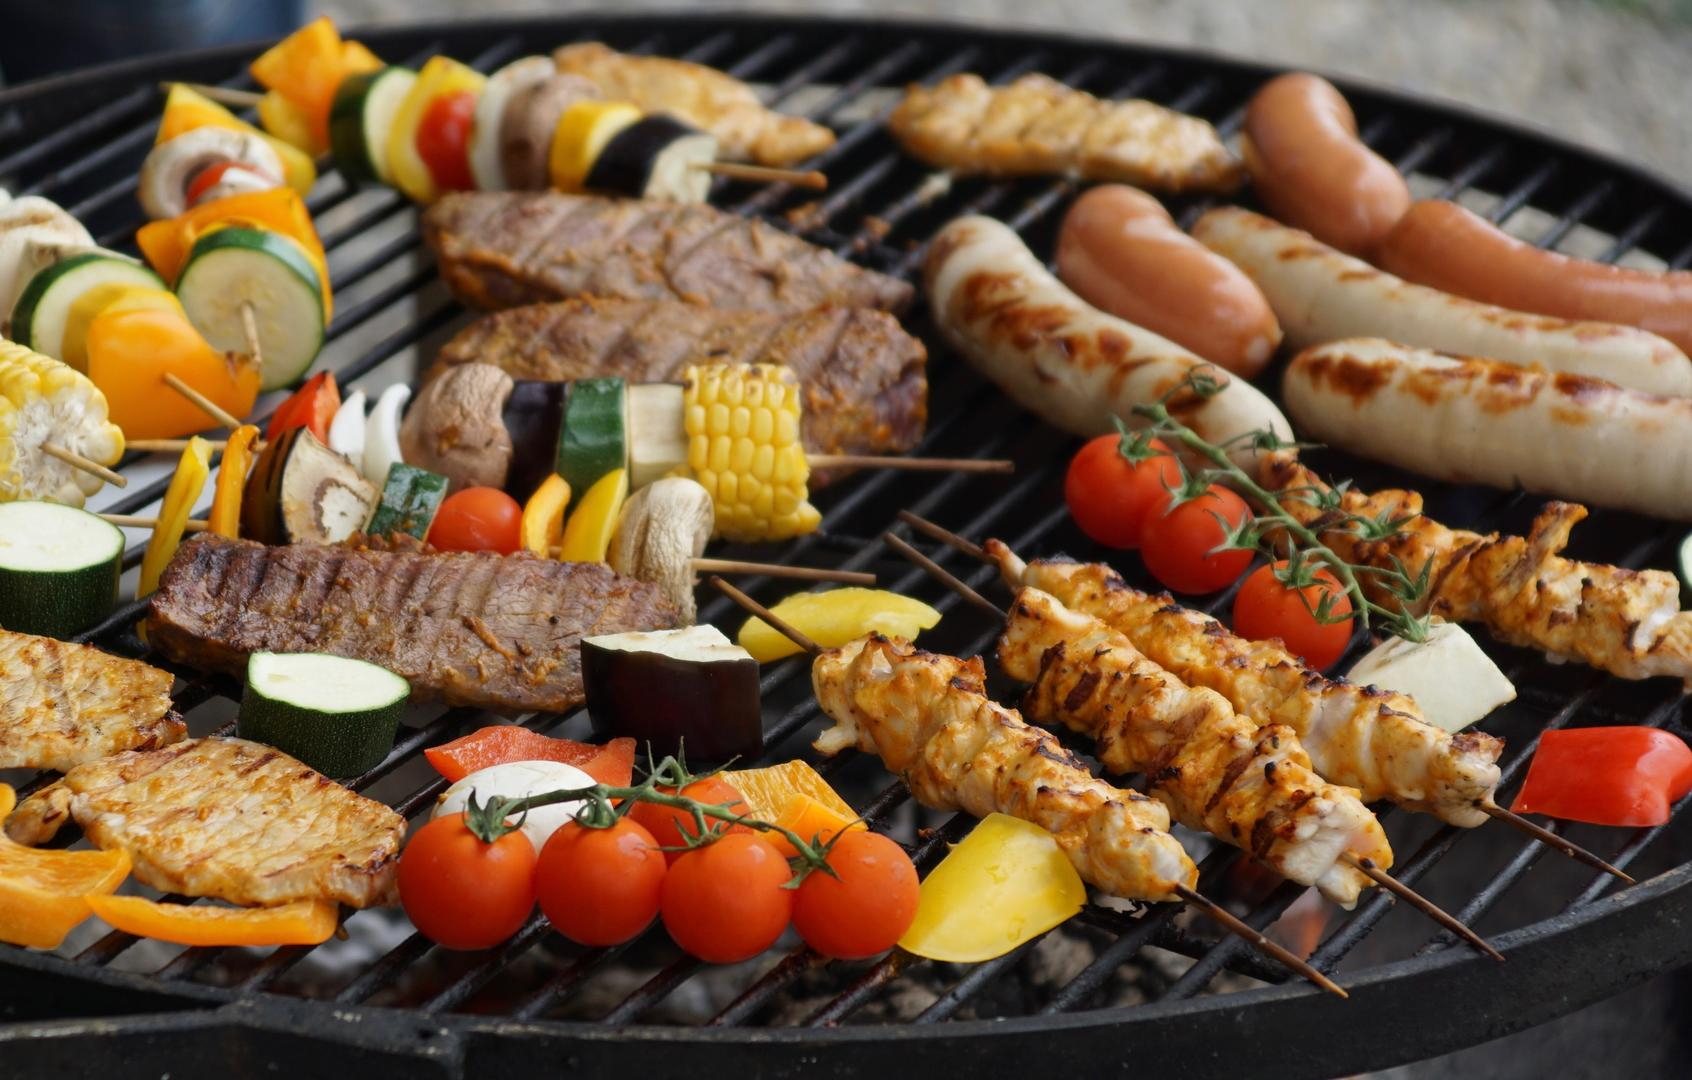 Enjoy our delicious BBQ in your home